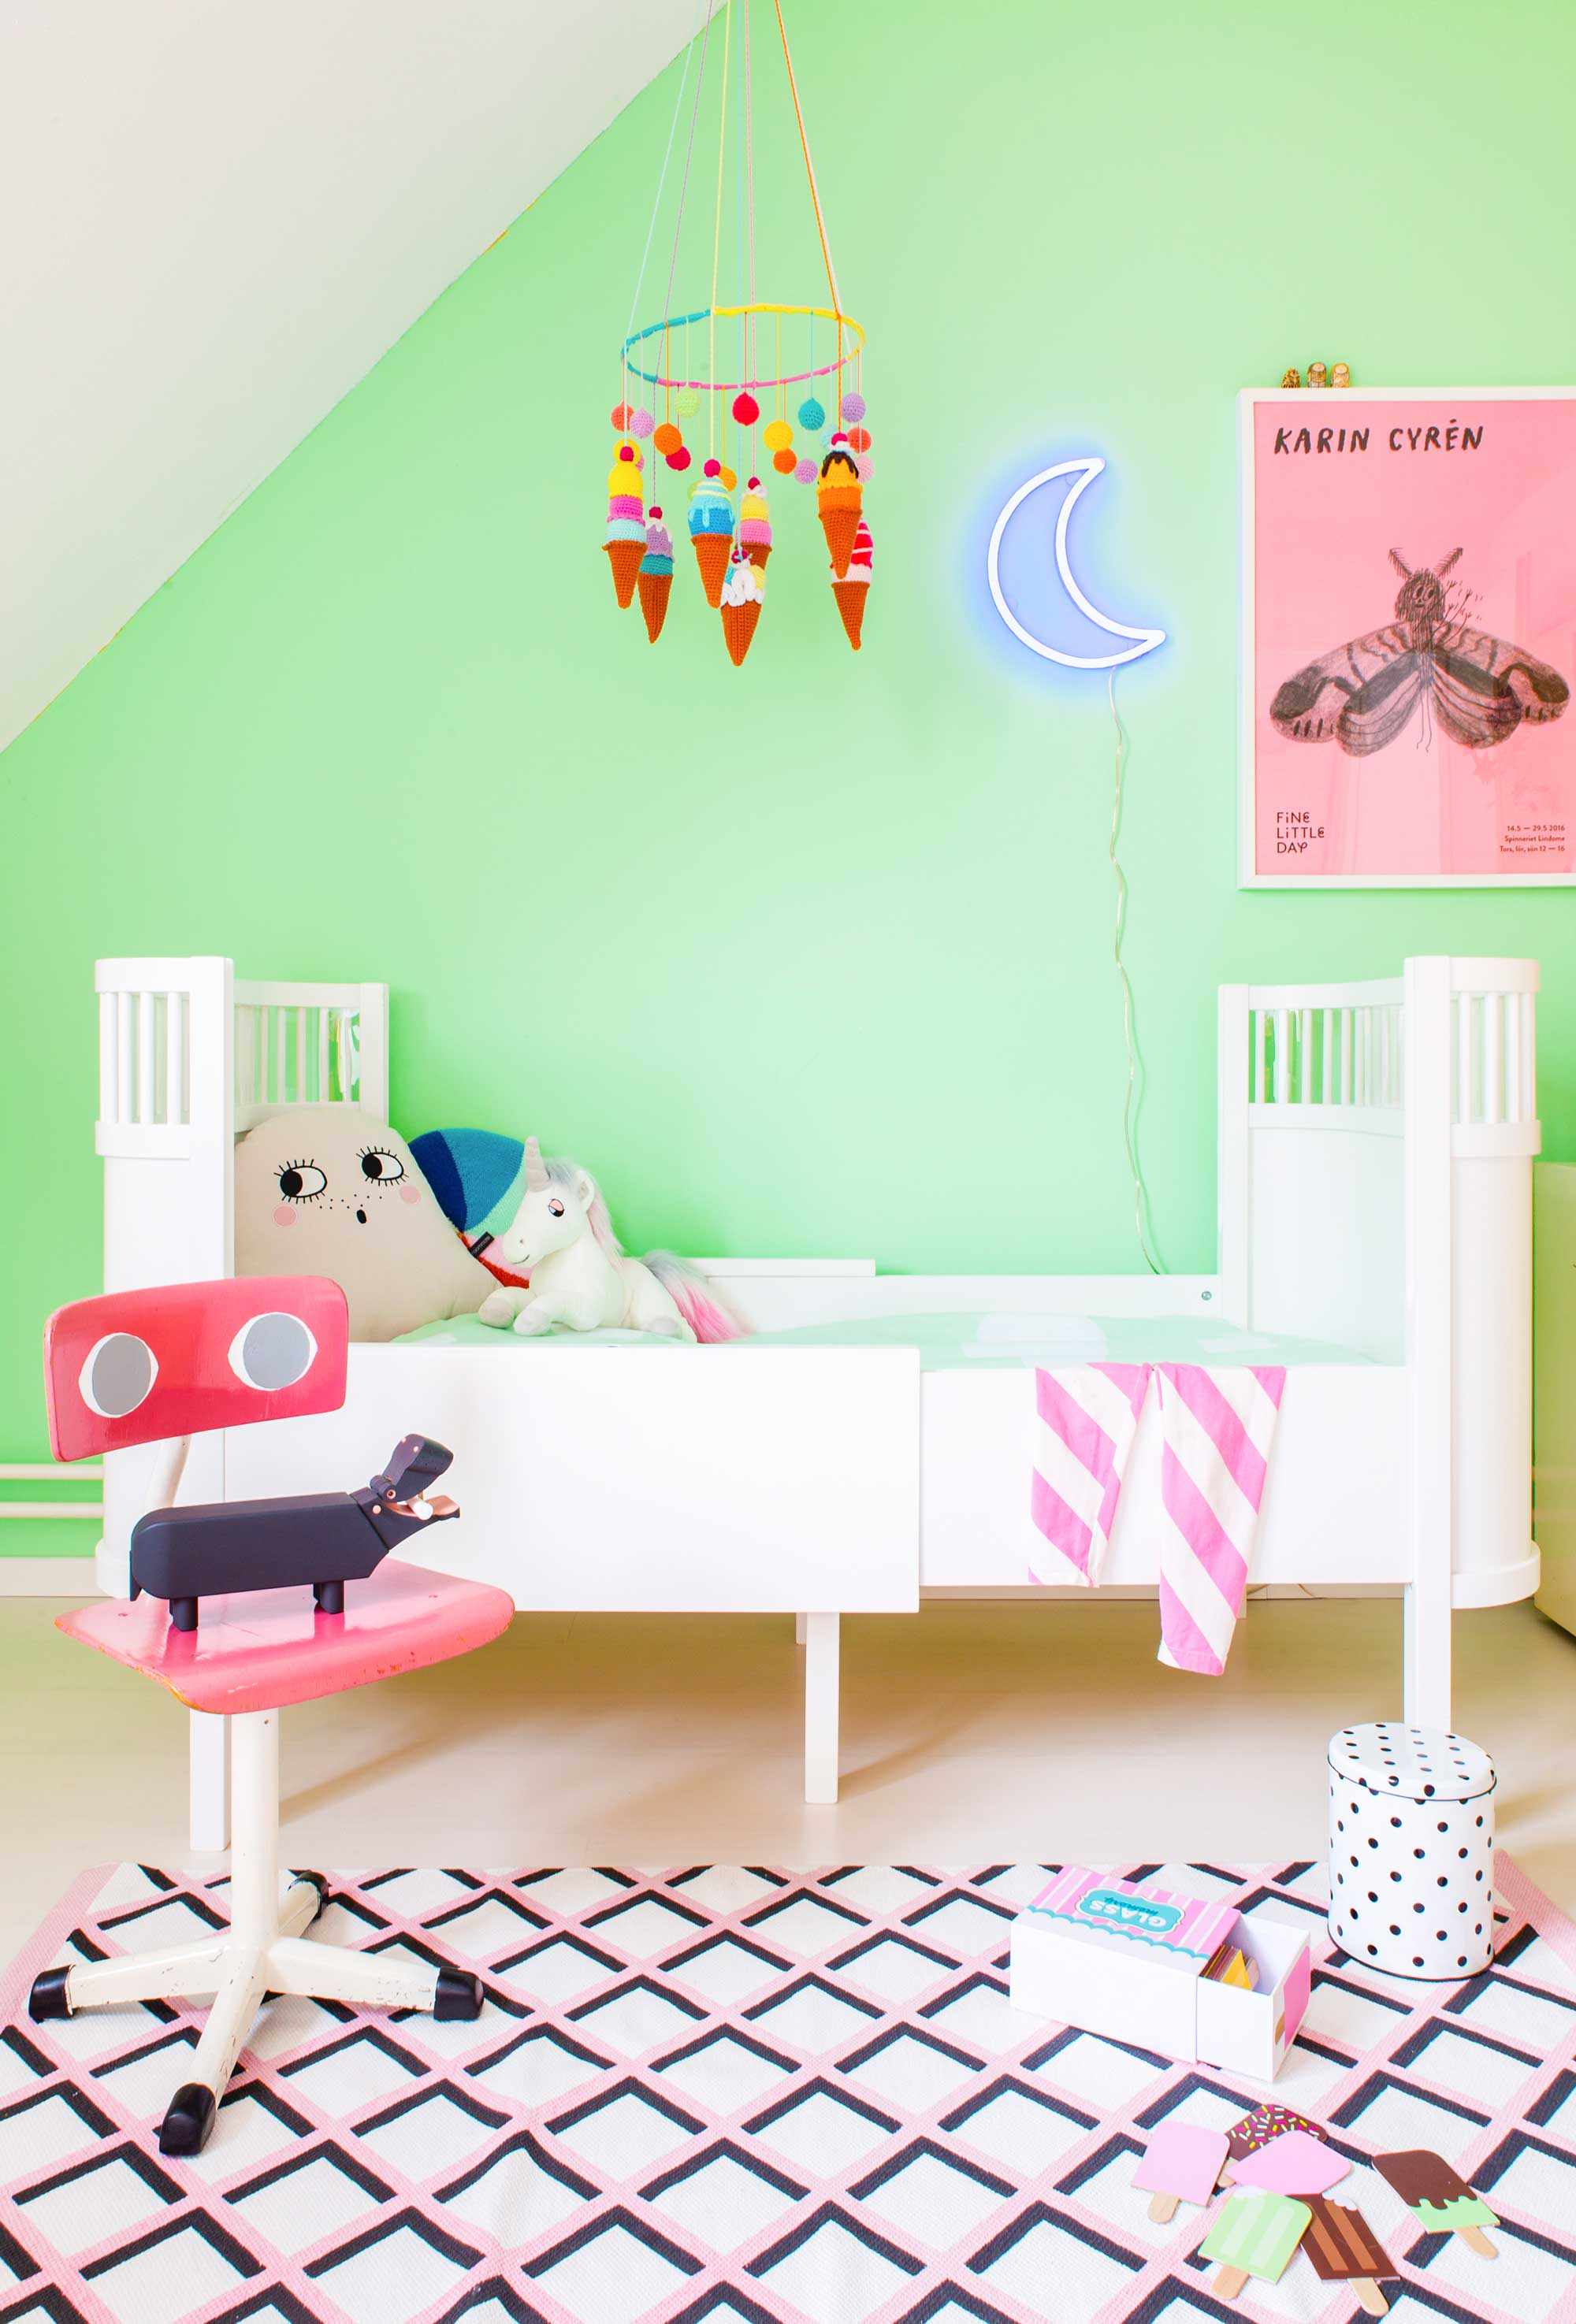 For Something A Little Diffe Especially If You Want To Be More Daring Try Clashing Pinks And Greens Like In This Room We Ve Got Bubble Gum Pink Mixed